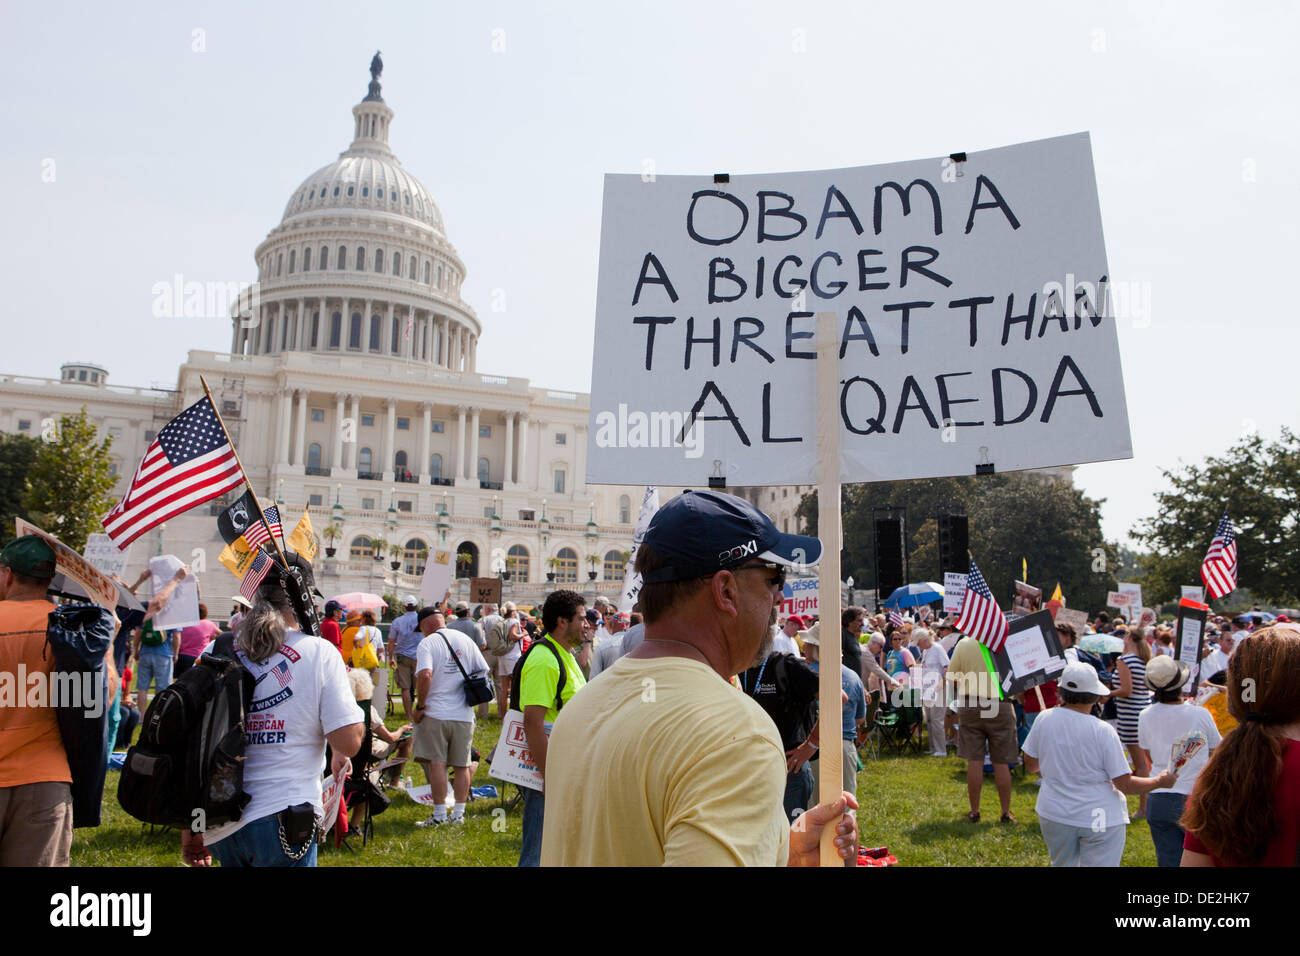 http://c8.alamy.com/comp/DE2HK7/tea-party-activists-gather-on-capitol-hill-to-protest-against-obamacare-DE2HK7.jpg